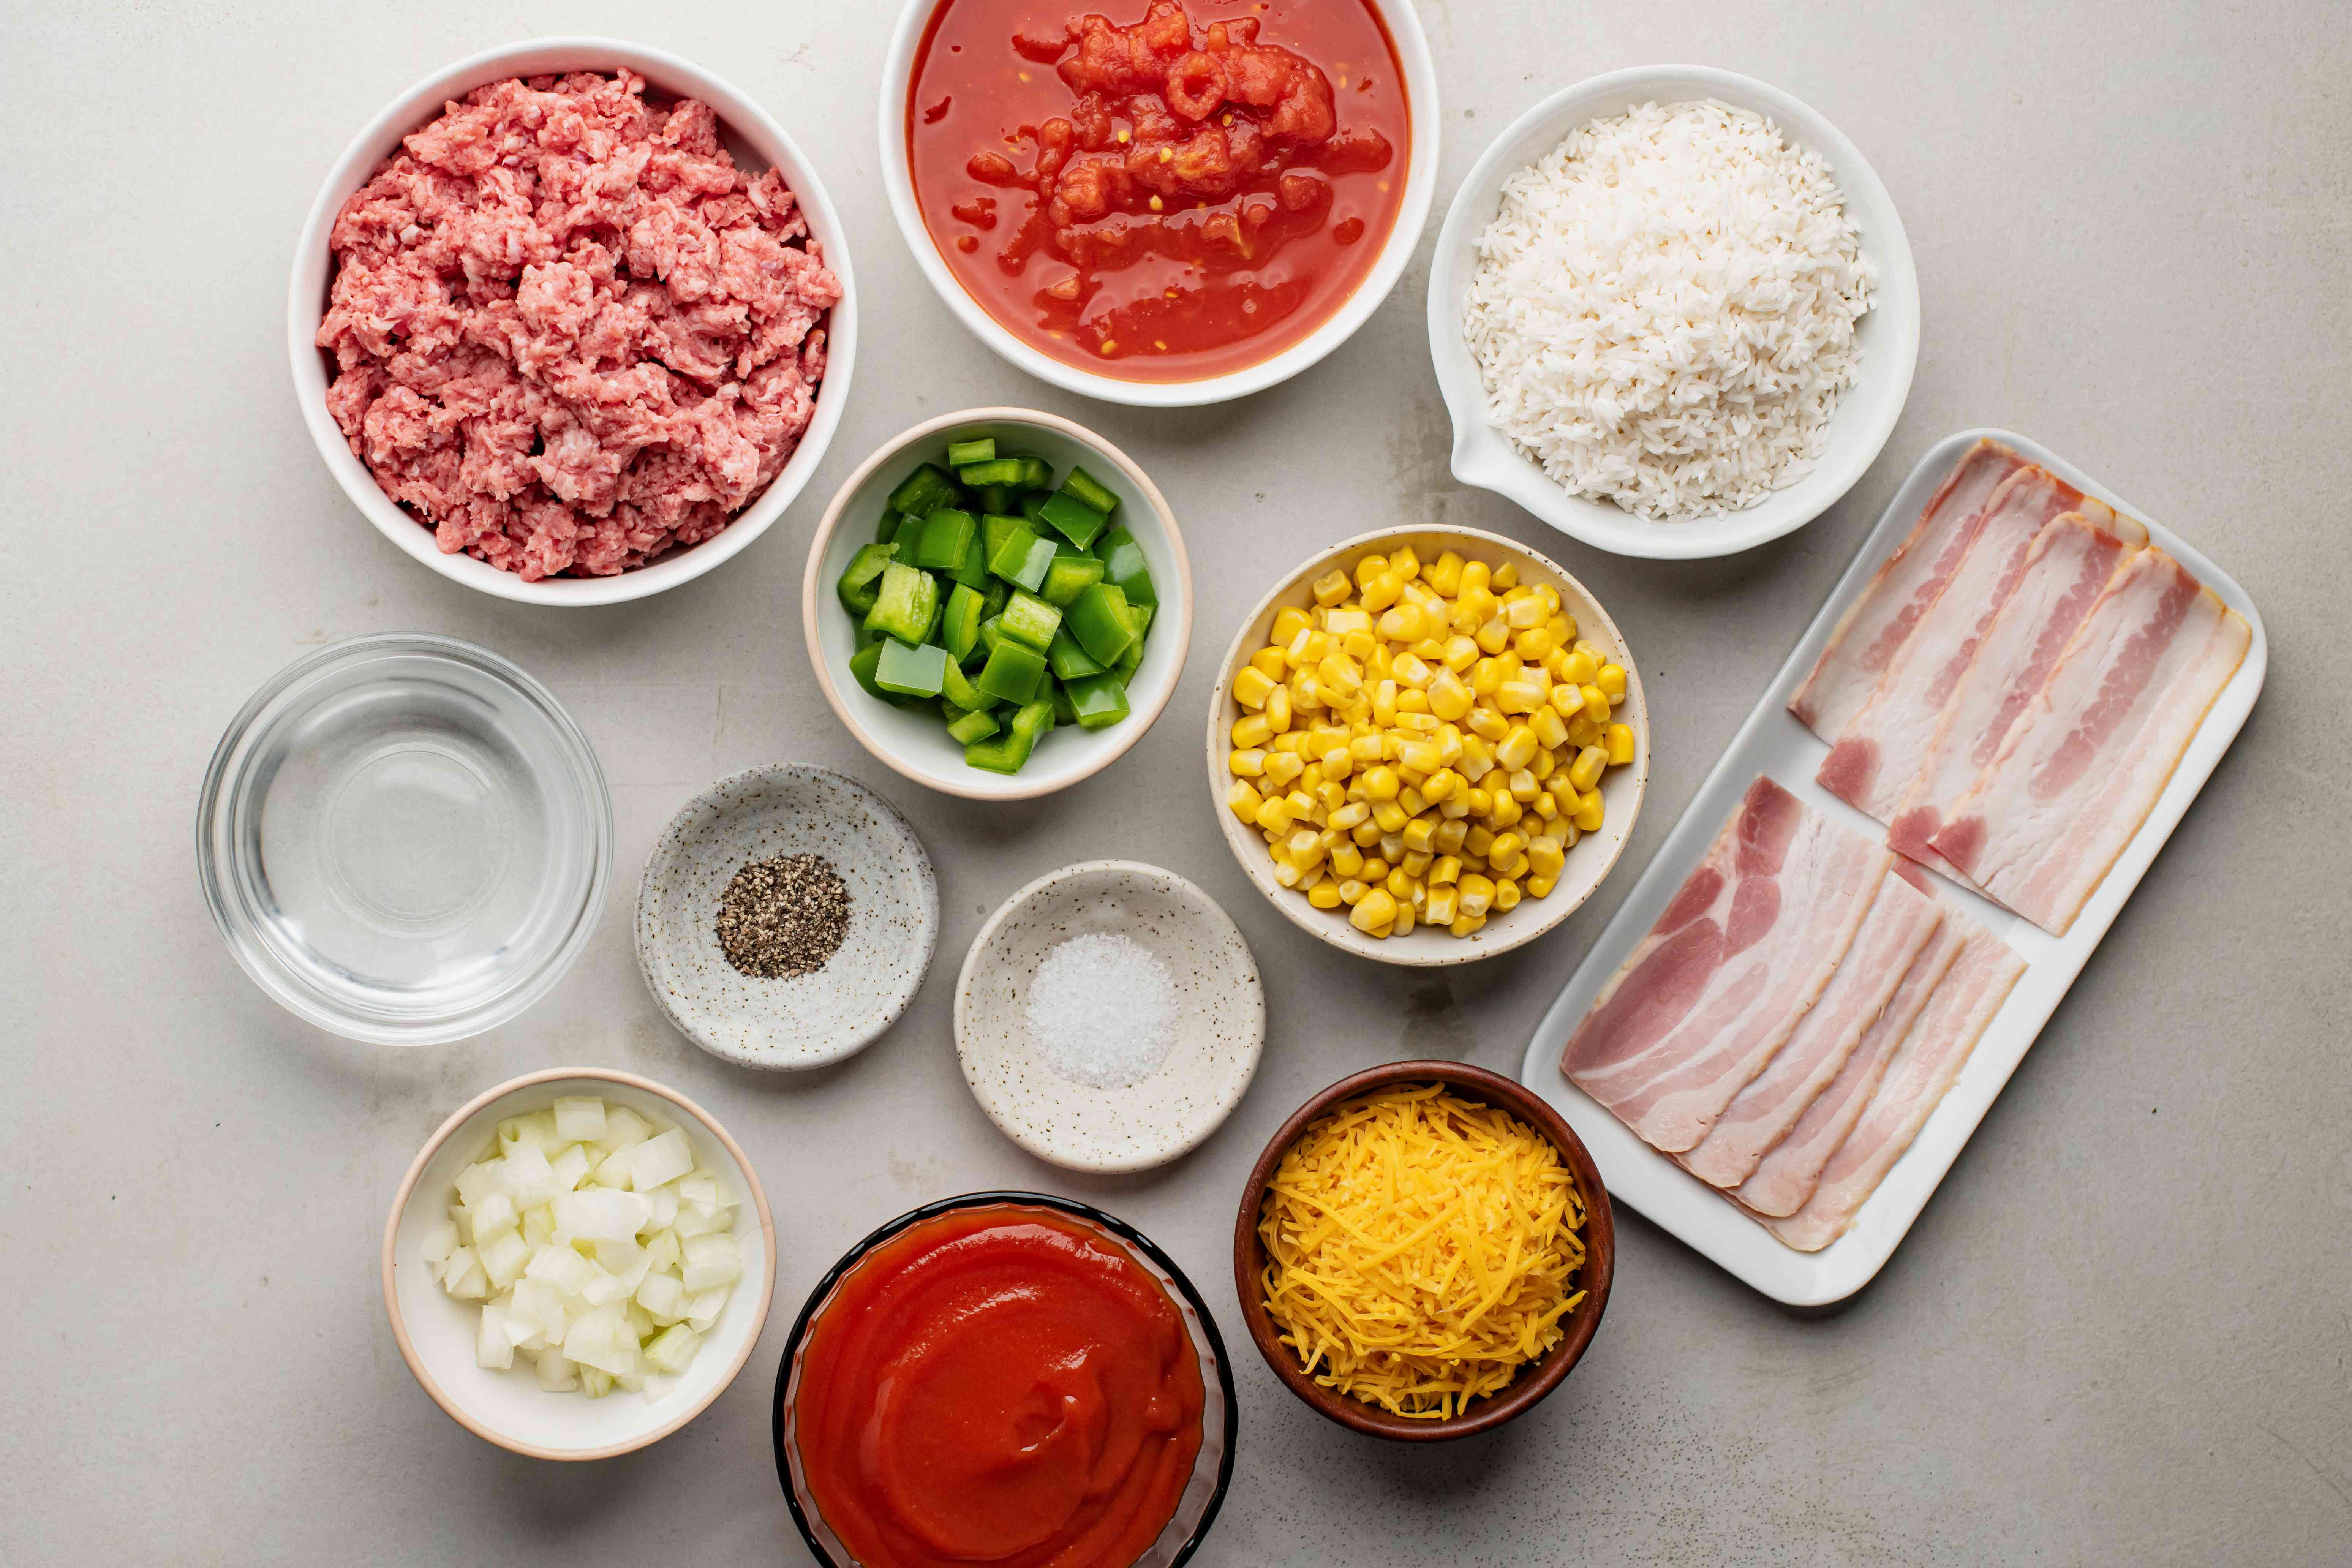 Ingredients for 7-layer casserole with ground beef